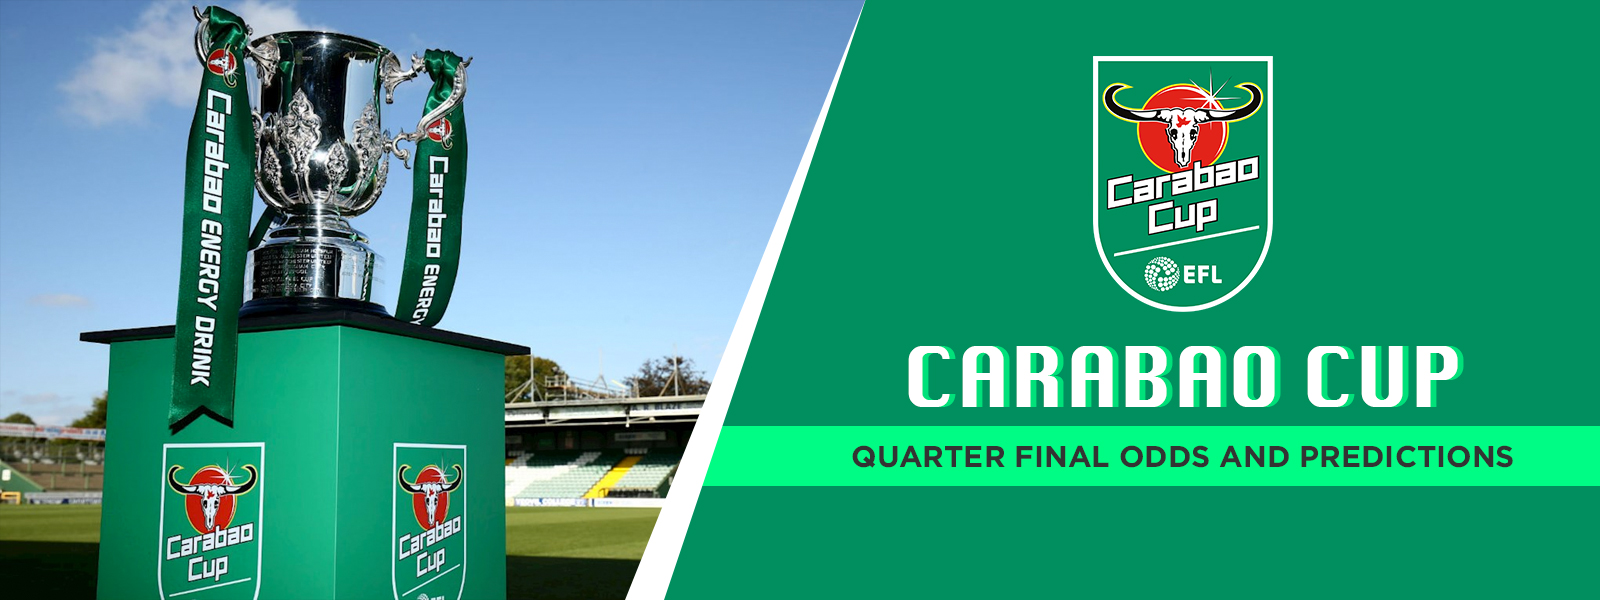 Carabao Cup: Quarter Final Betting Odds And Expert Predictions